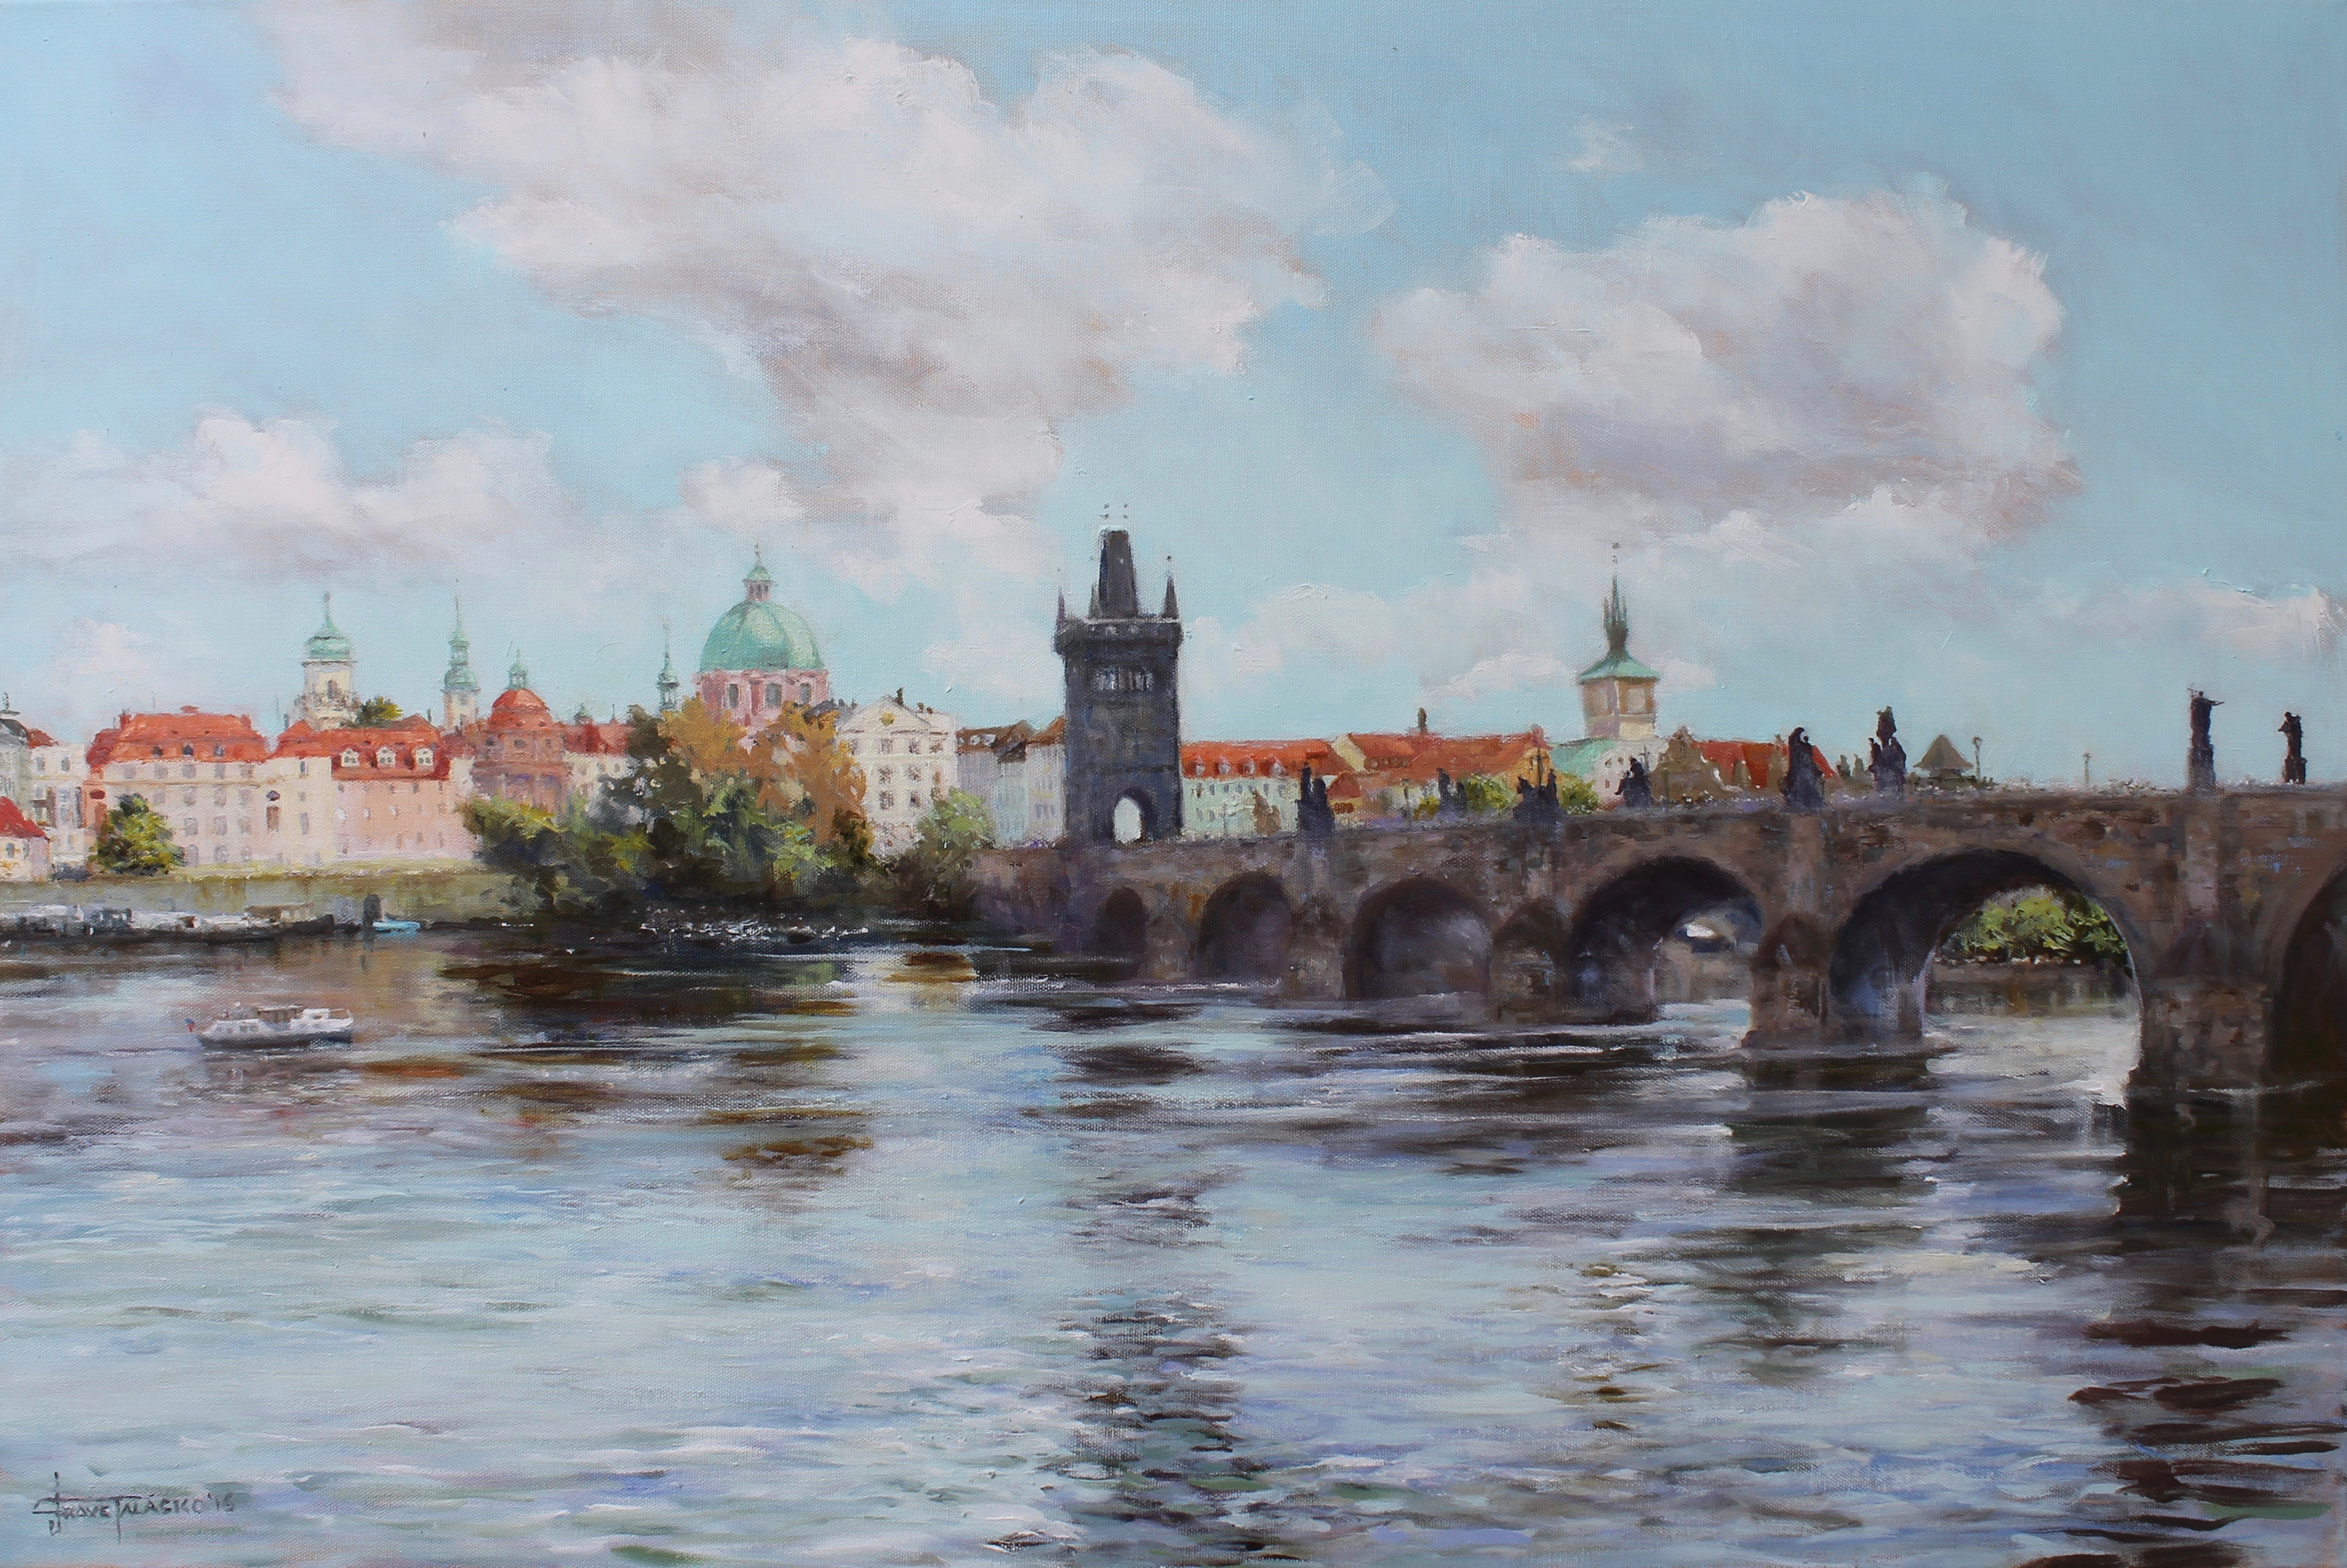 The Bridge of Charles IV